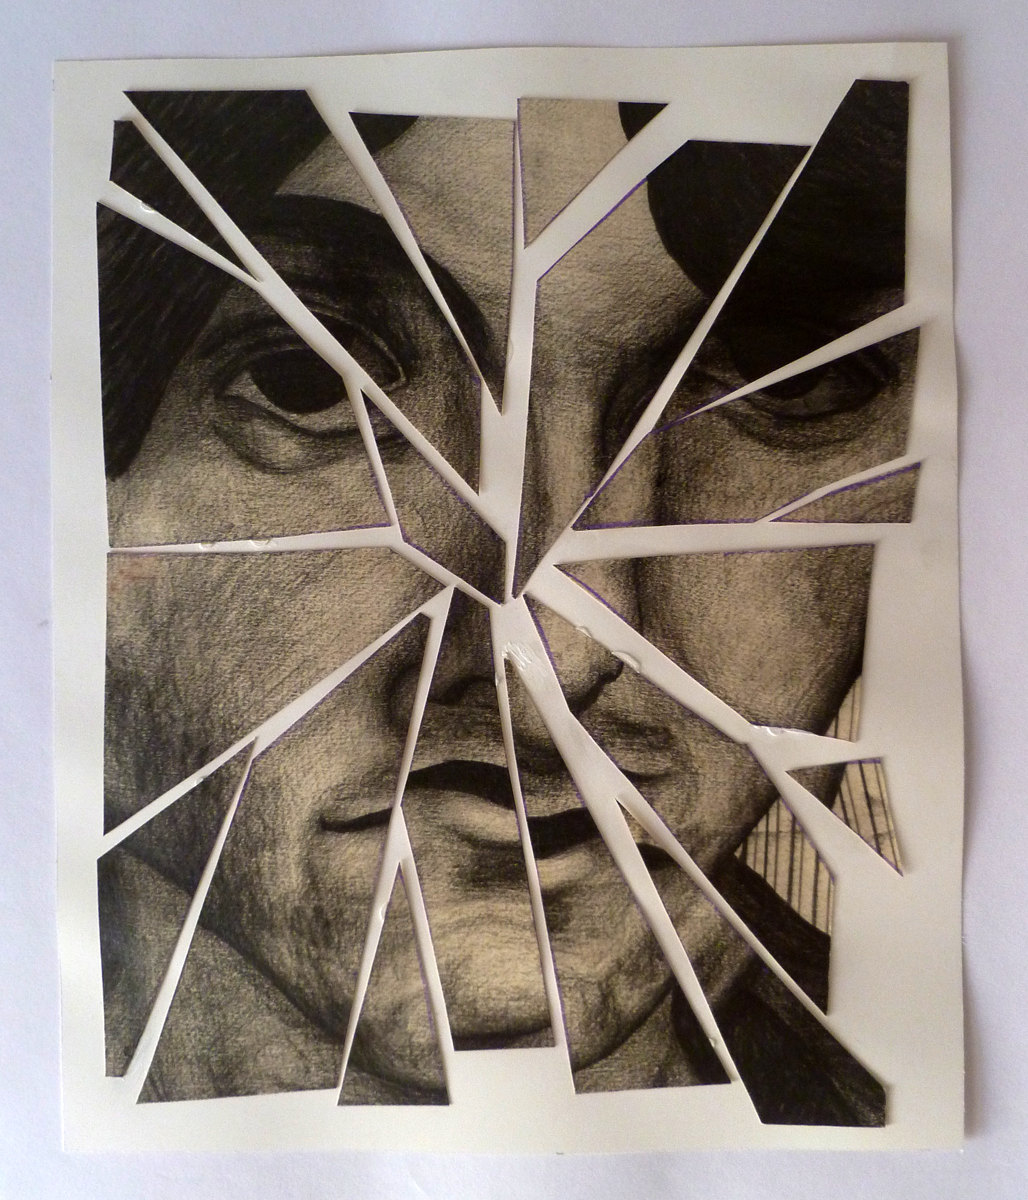 Drawn glass mirrored Broken Broken drawing final portrait